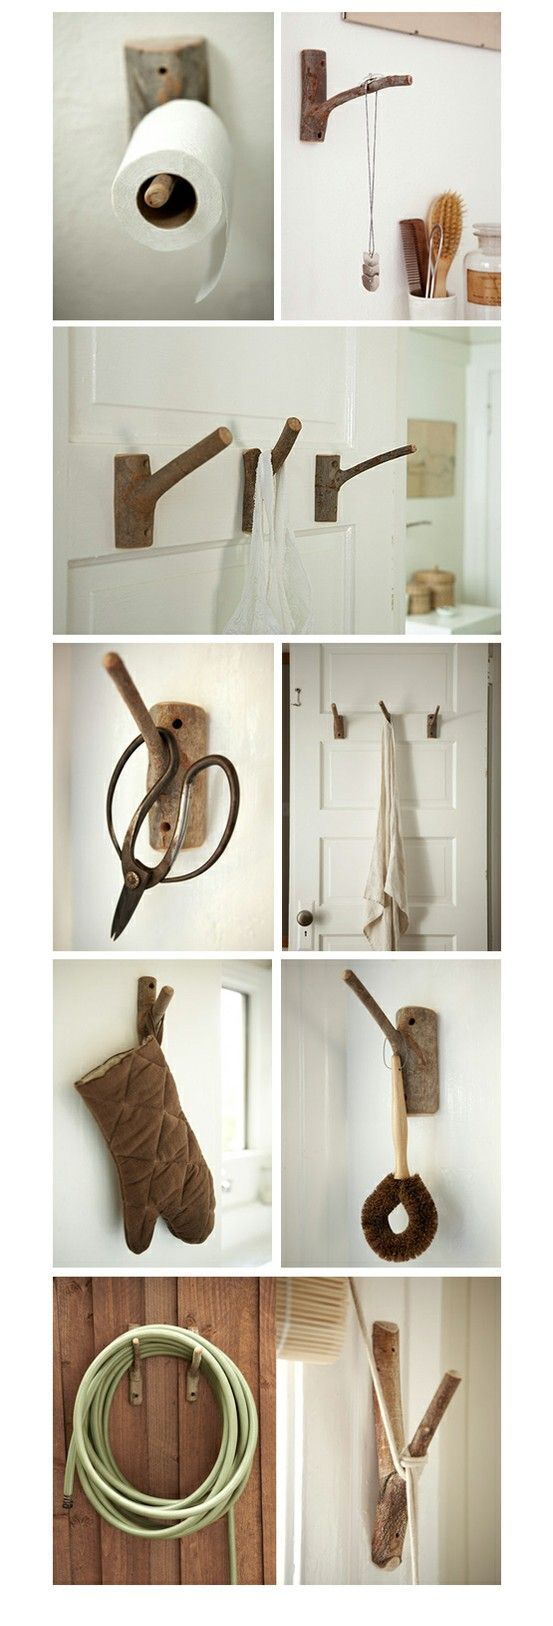 branch hooks - I like the toilet paper and curtain tieback idea!